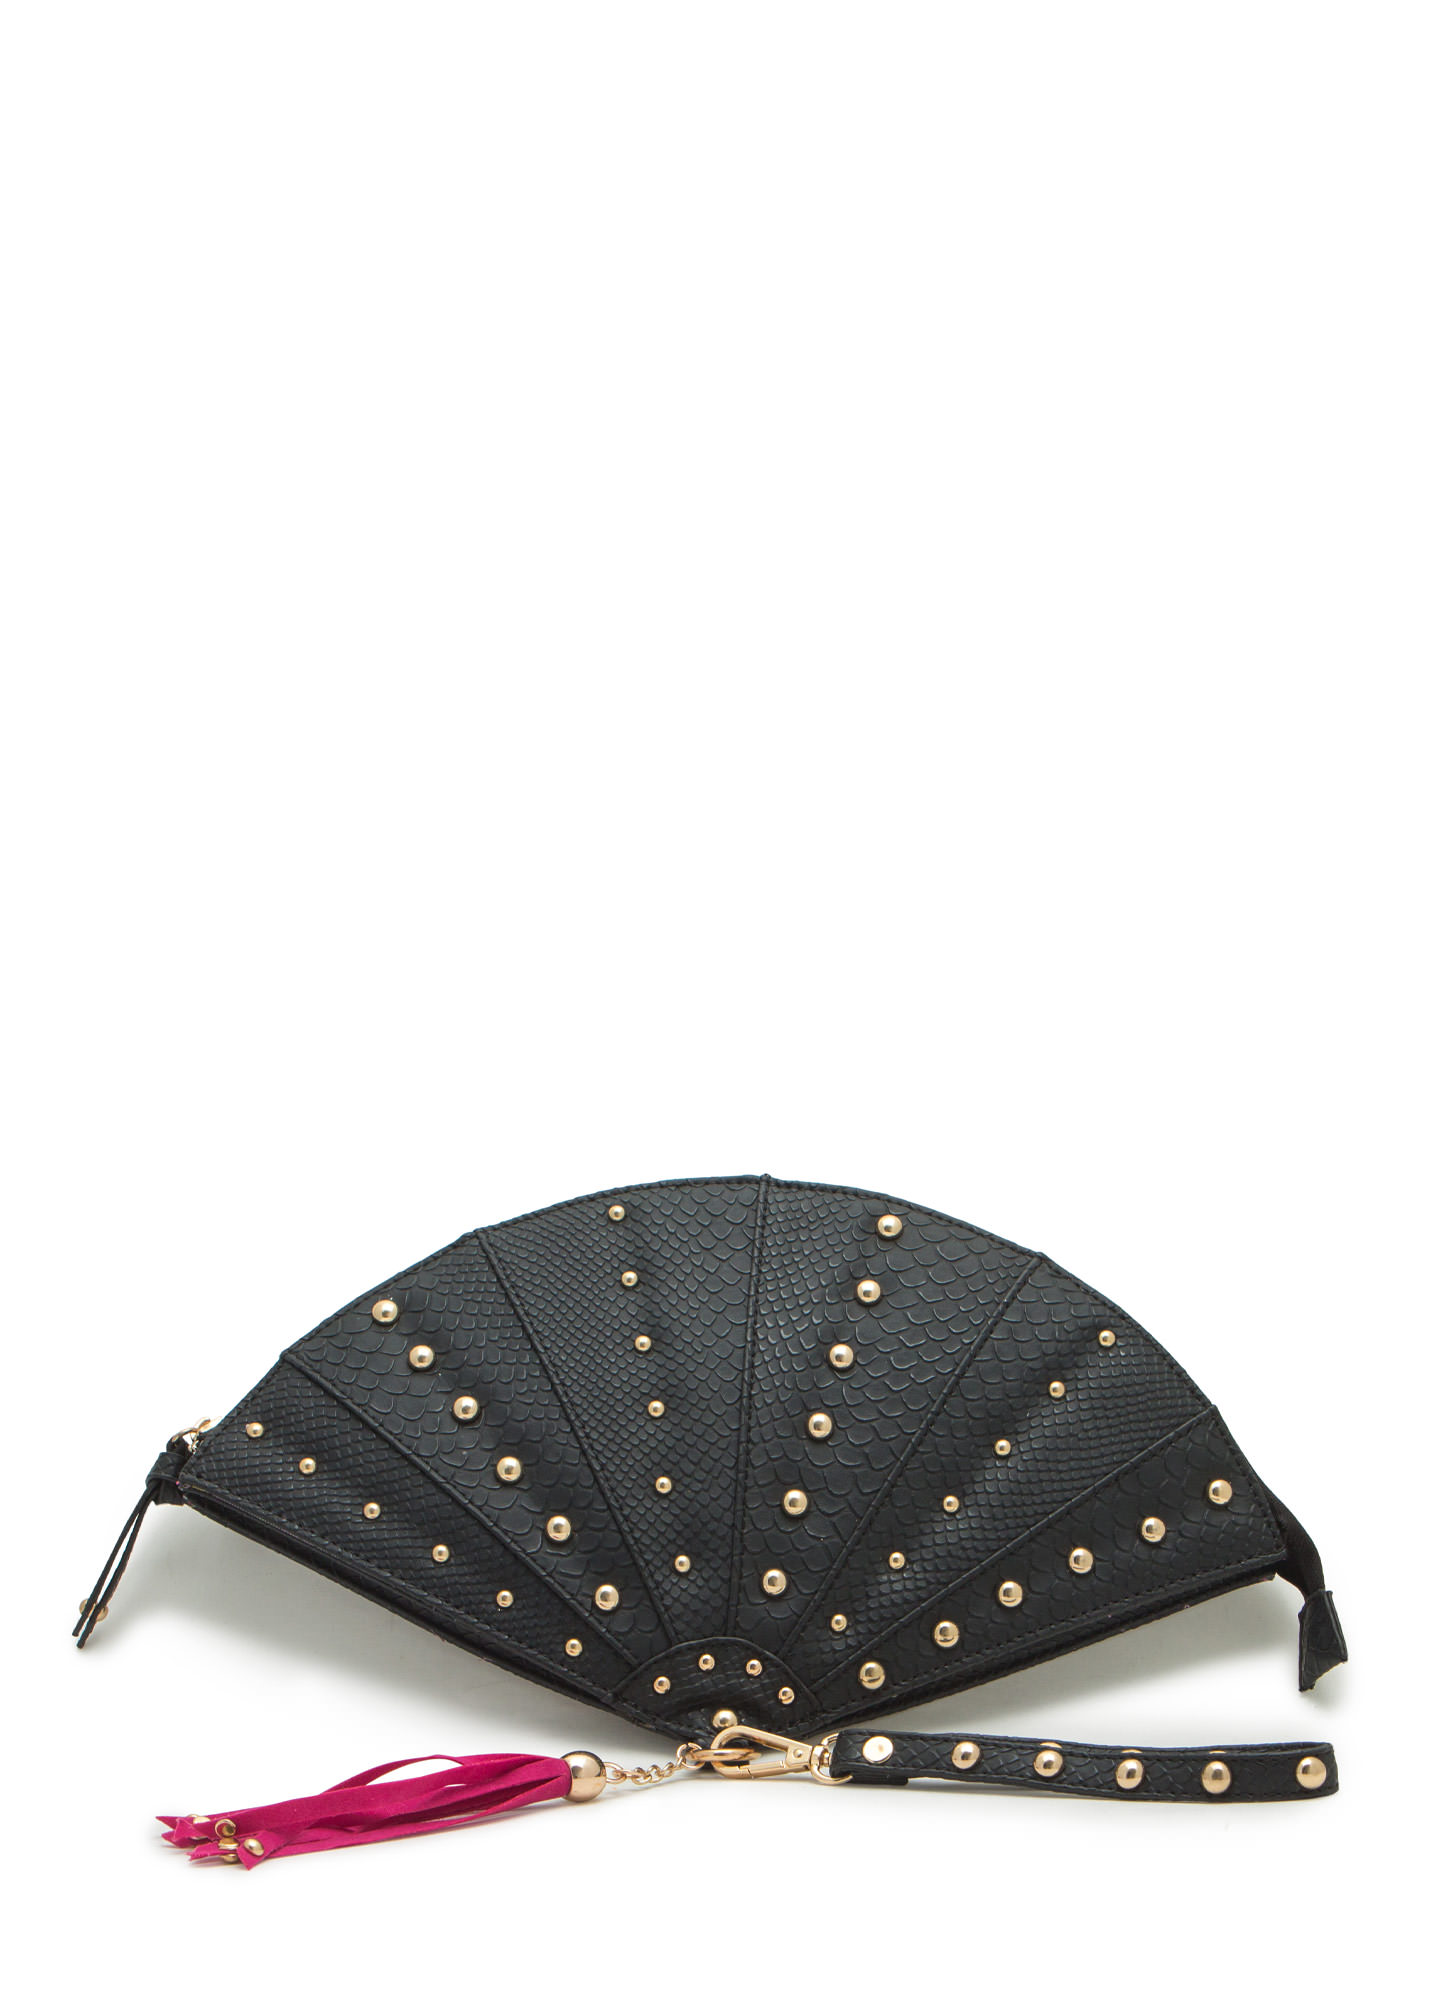 Tasseled Fan Studded Clutch BLACK